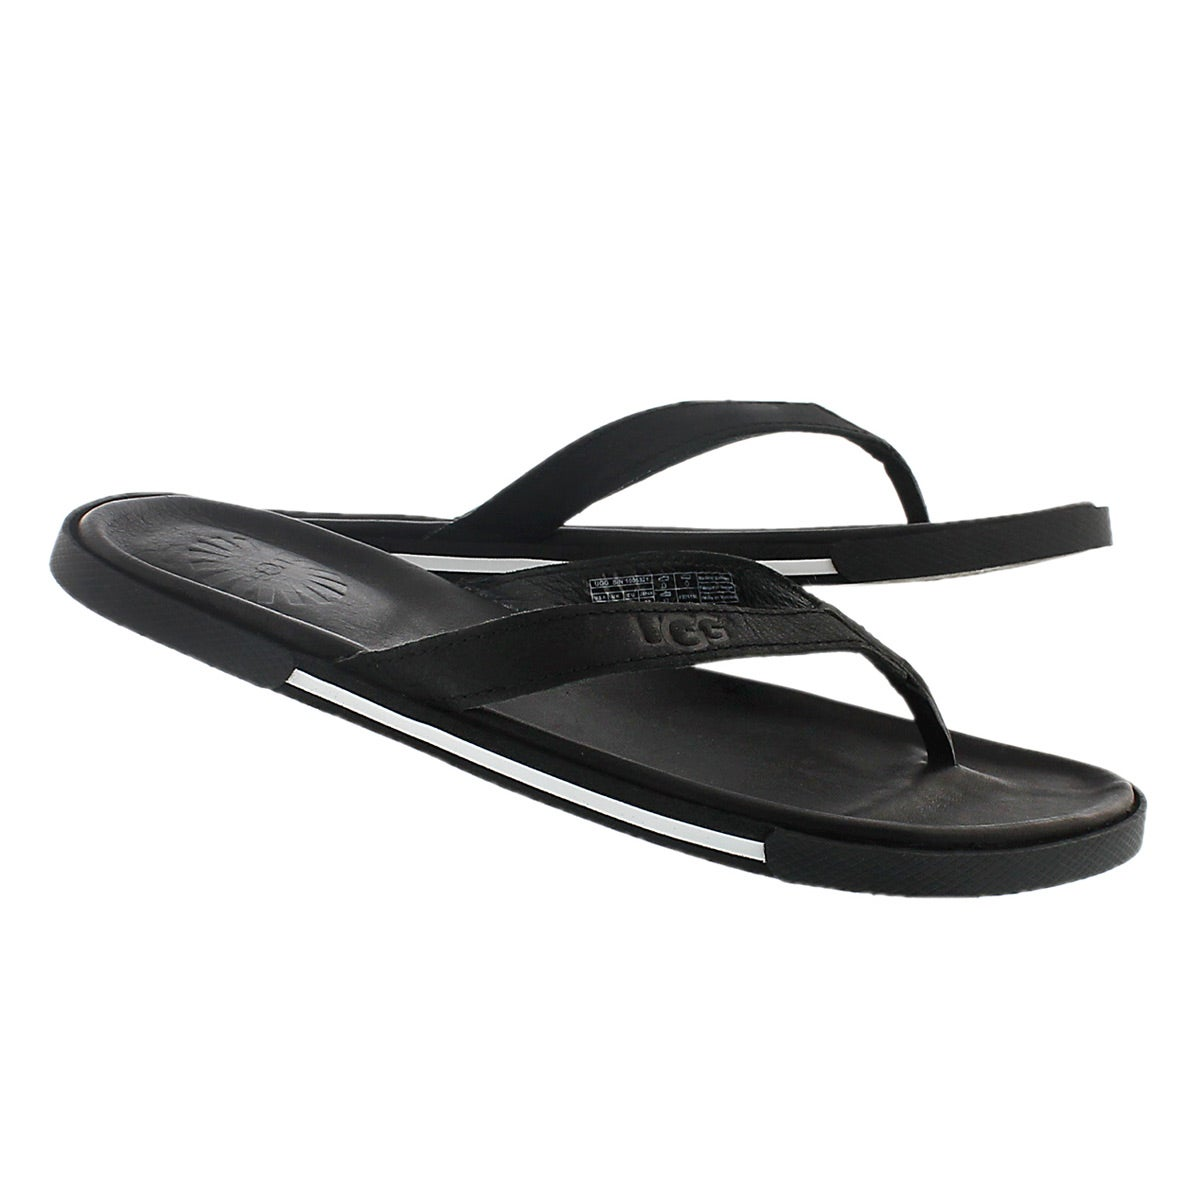 Mns Bennison II black leather sandal